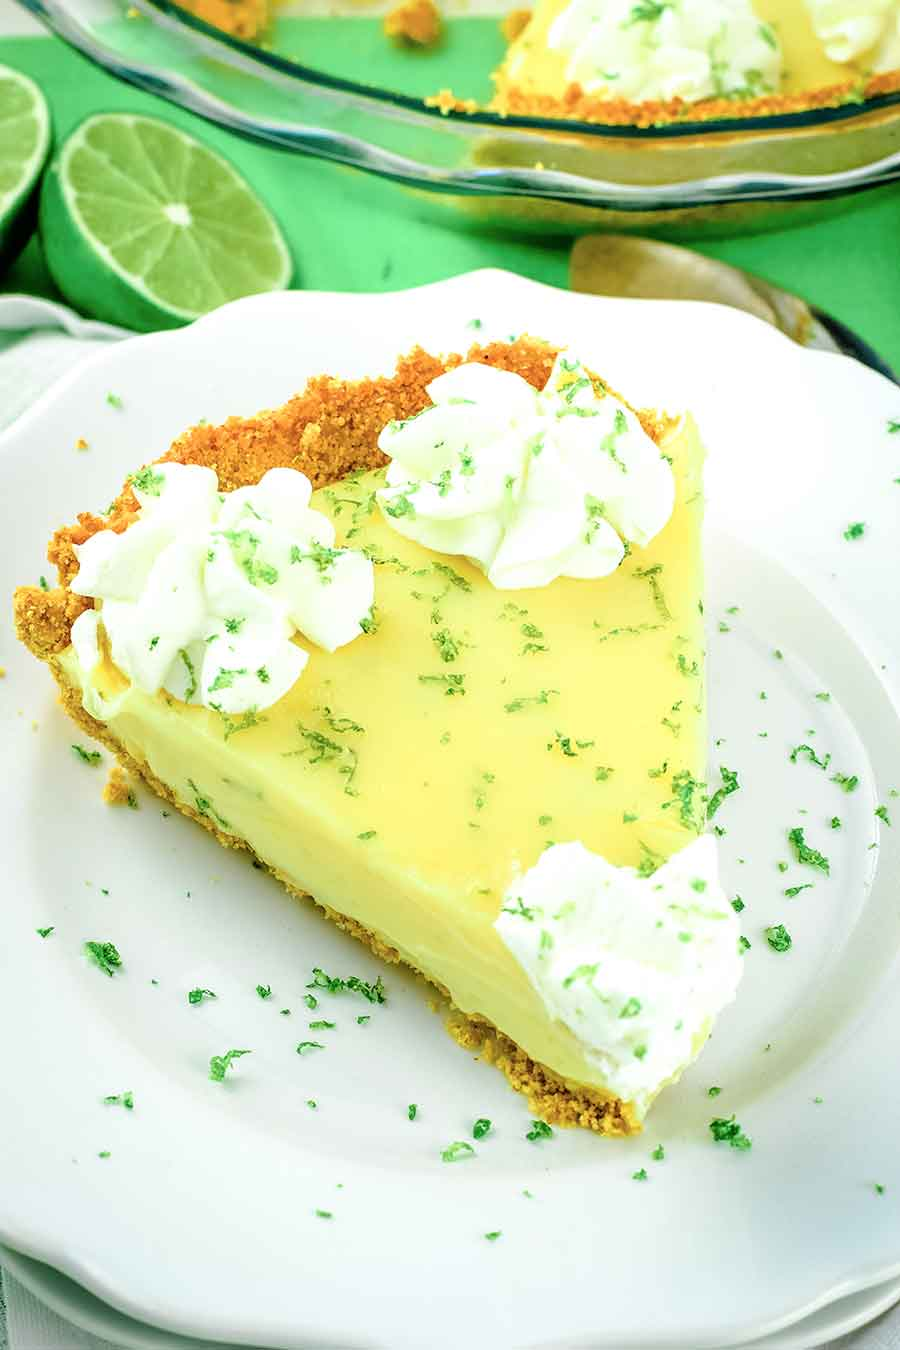 A slice of the Best Key Lime Pie topped with whipped cream and lime zest